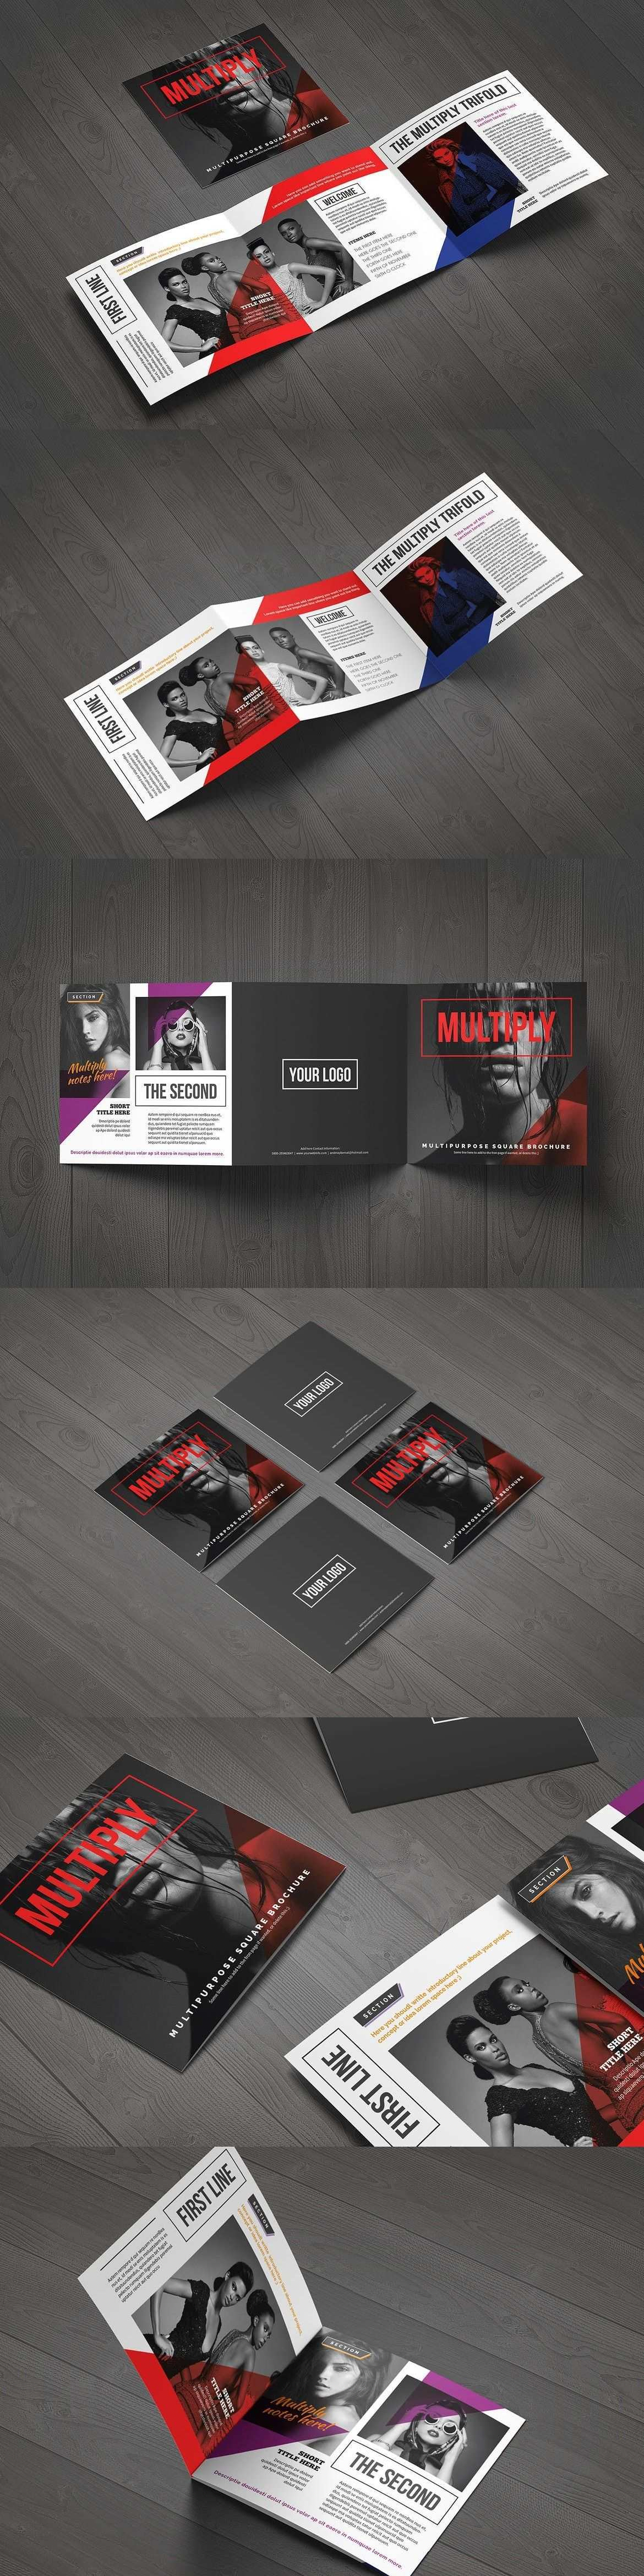 Multiply Square Trifold Template Adobe Illustrator Style Digital Download Unlimited Items On Envato Elements Trifold Templates Square Brochures Templates